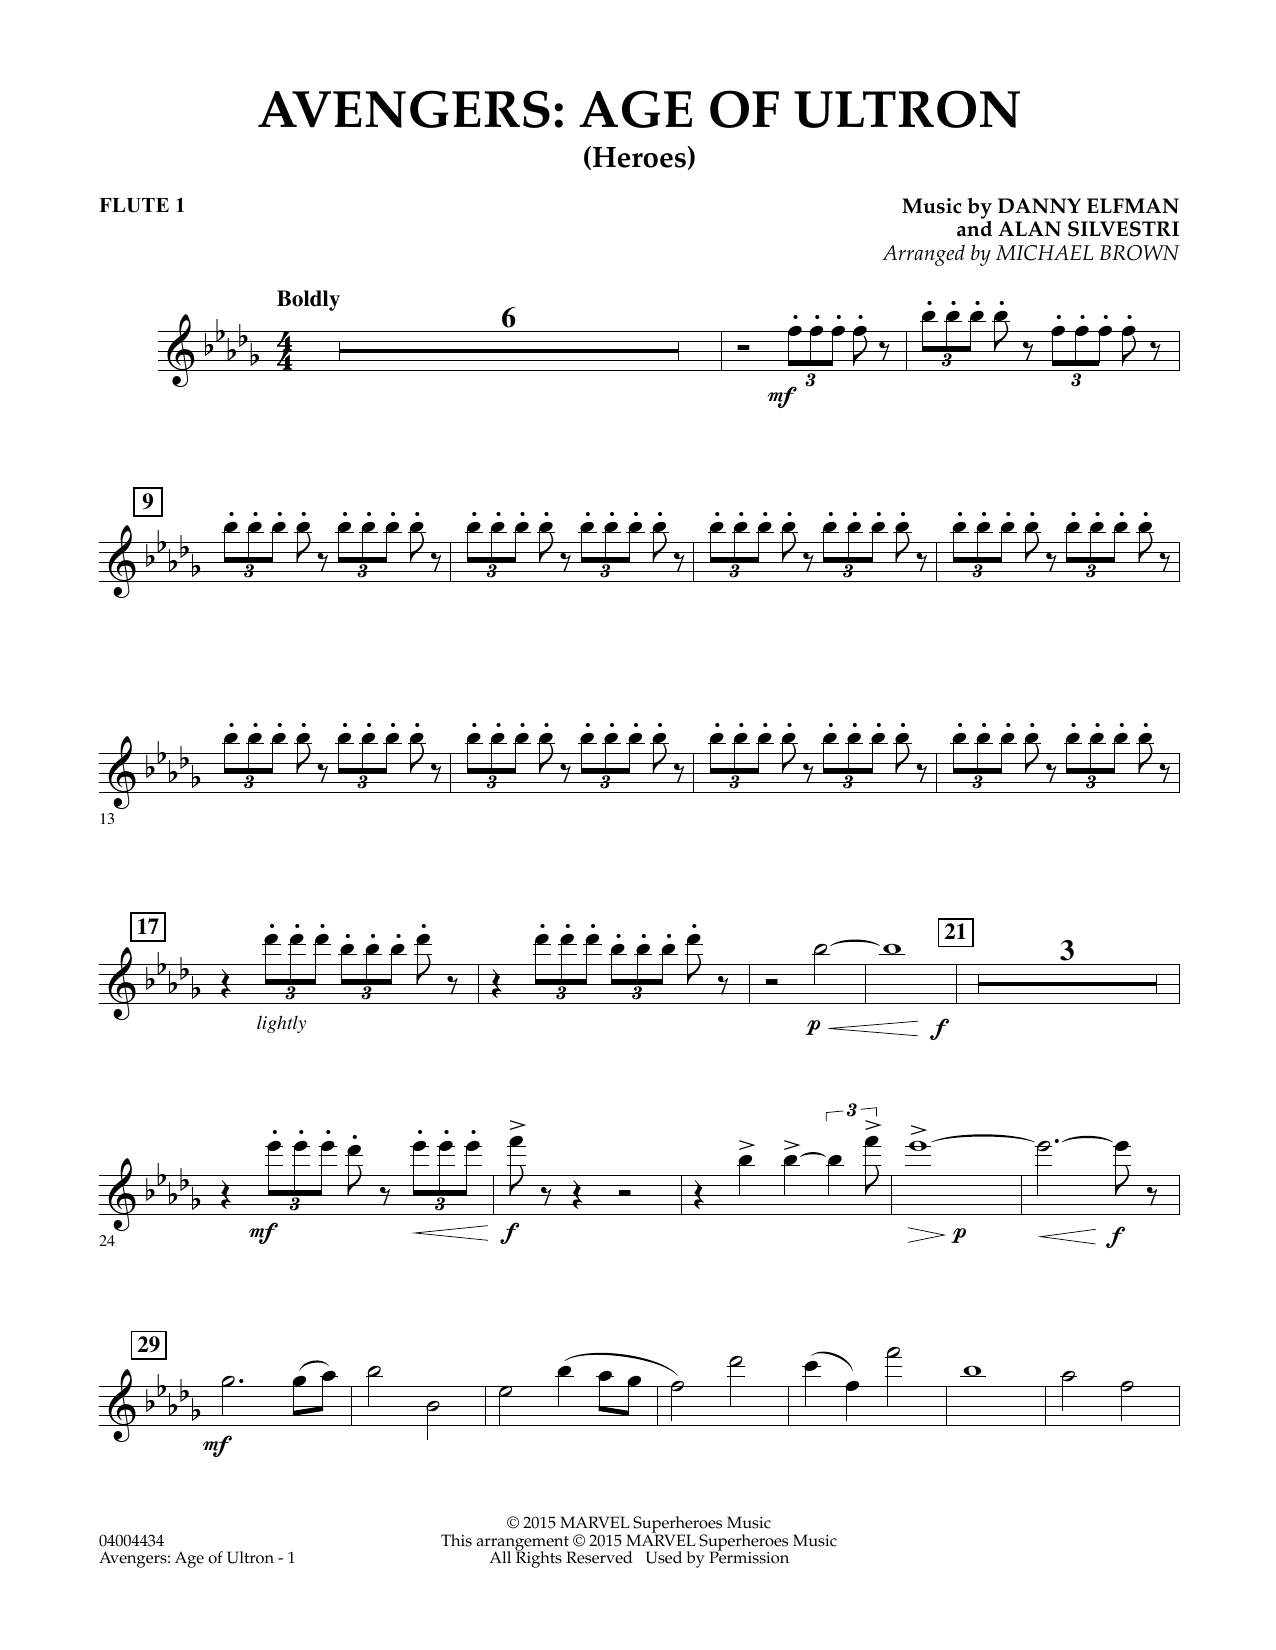 Avengers: The Age of Ultron (Main Theme) - Flute 1 by Michael Brown Concert  Band Digital Sheet Music